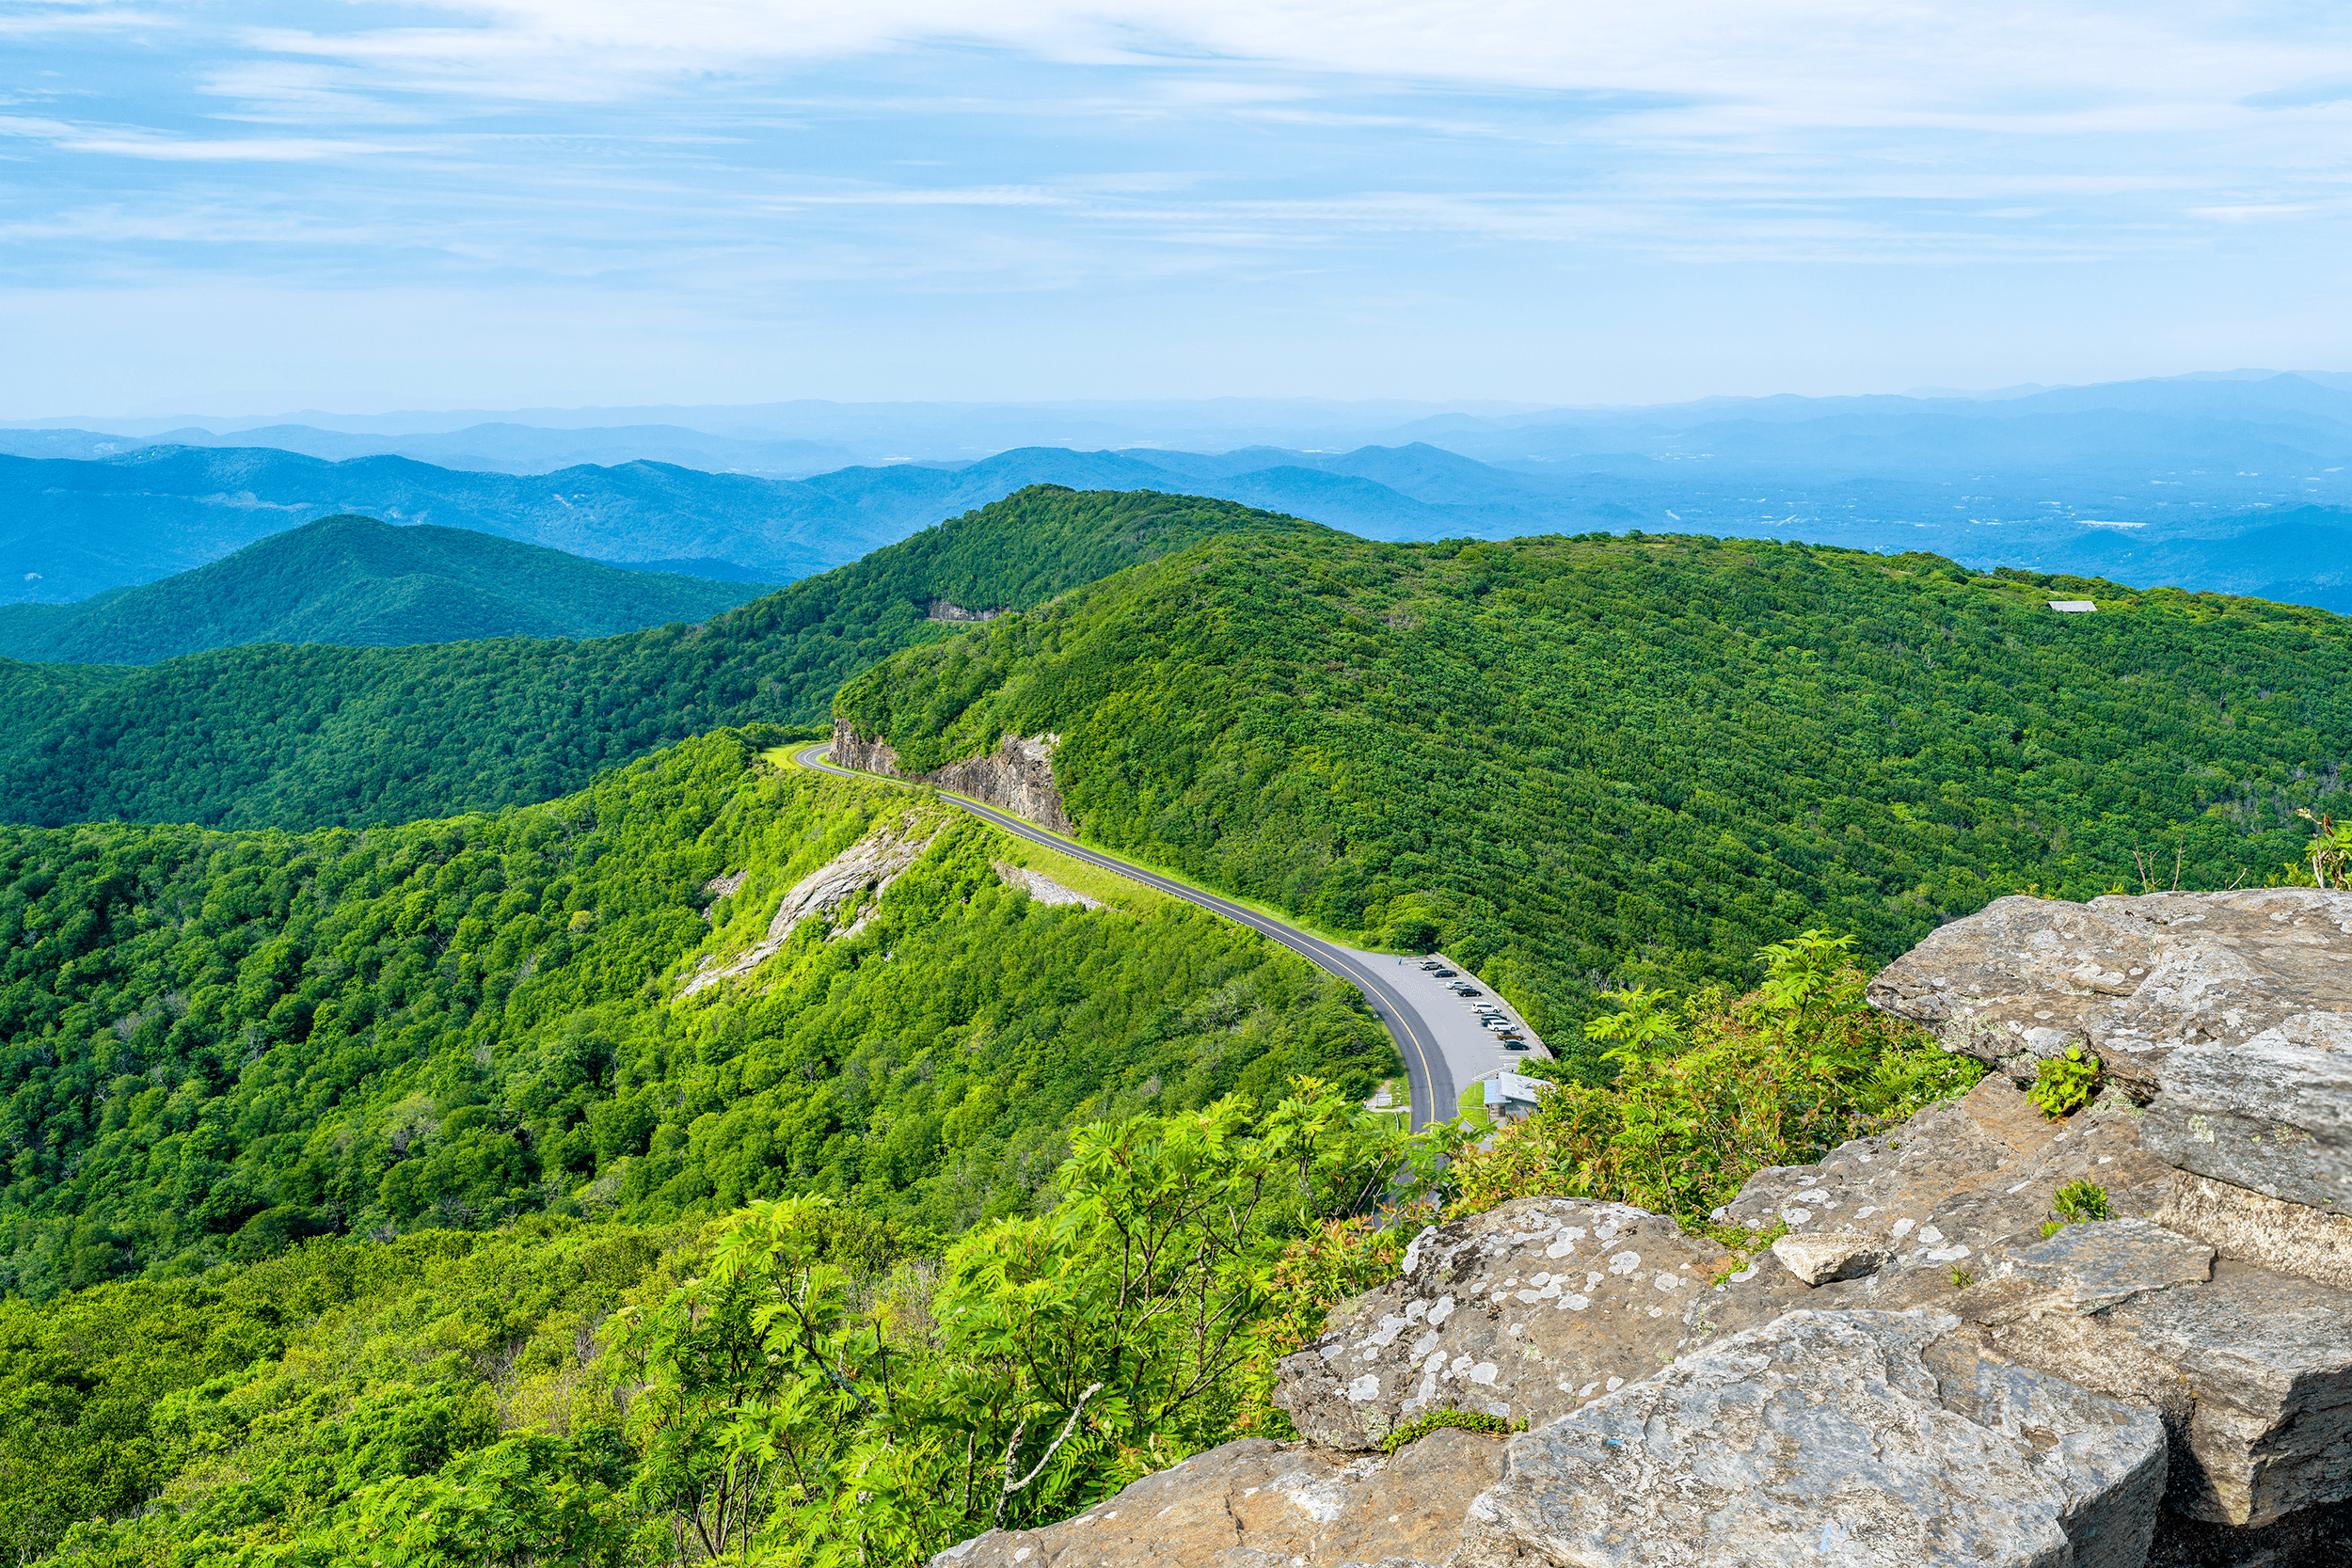 The long-range views from the  Craggy Pinnacle  observation platform at 5,892 feet (1,796 meters) are stunning.